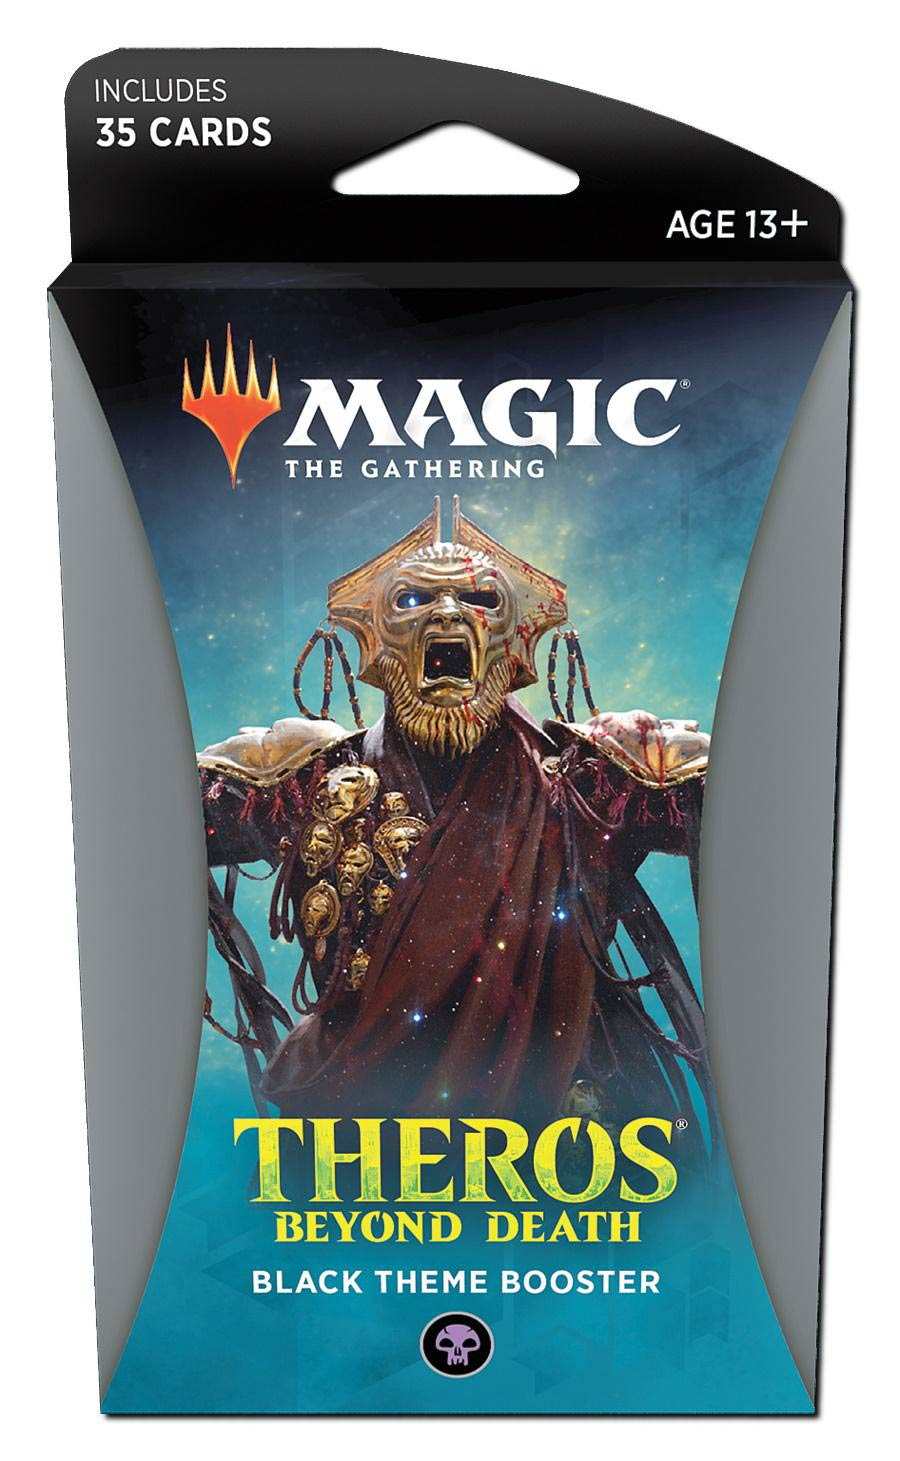 Magic The Gathering Theros Beyond Death Theme Booster Pack - Black